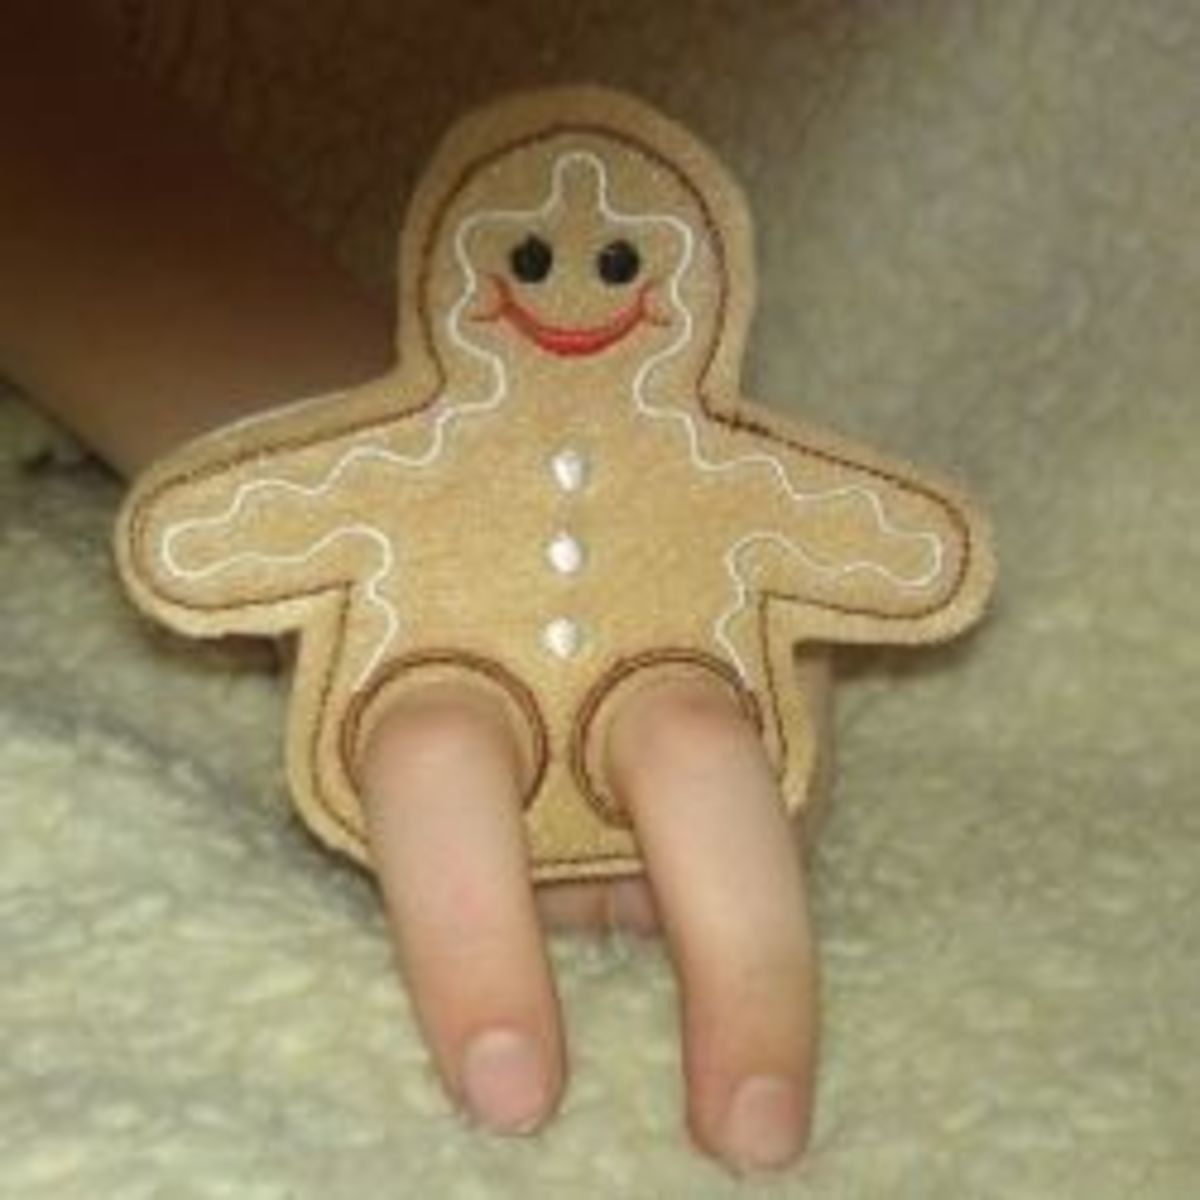 Gingerbread Man Finger Puppet Image Credit: http://www.techbeats.co.uk/interview-wildkats-playset/